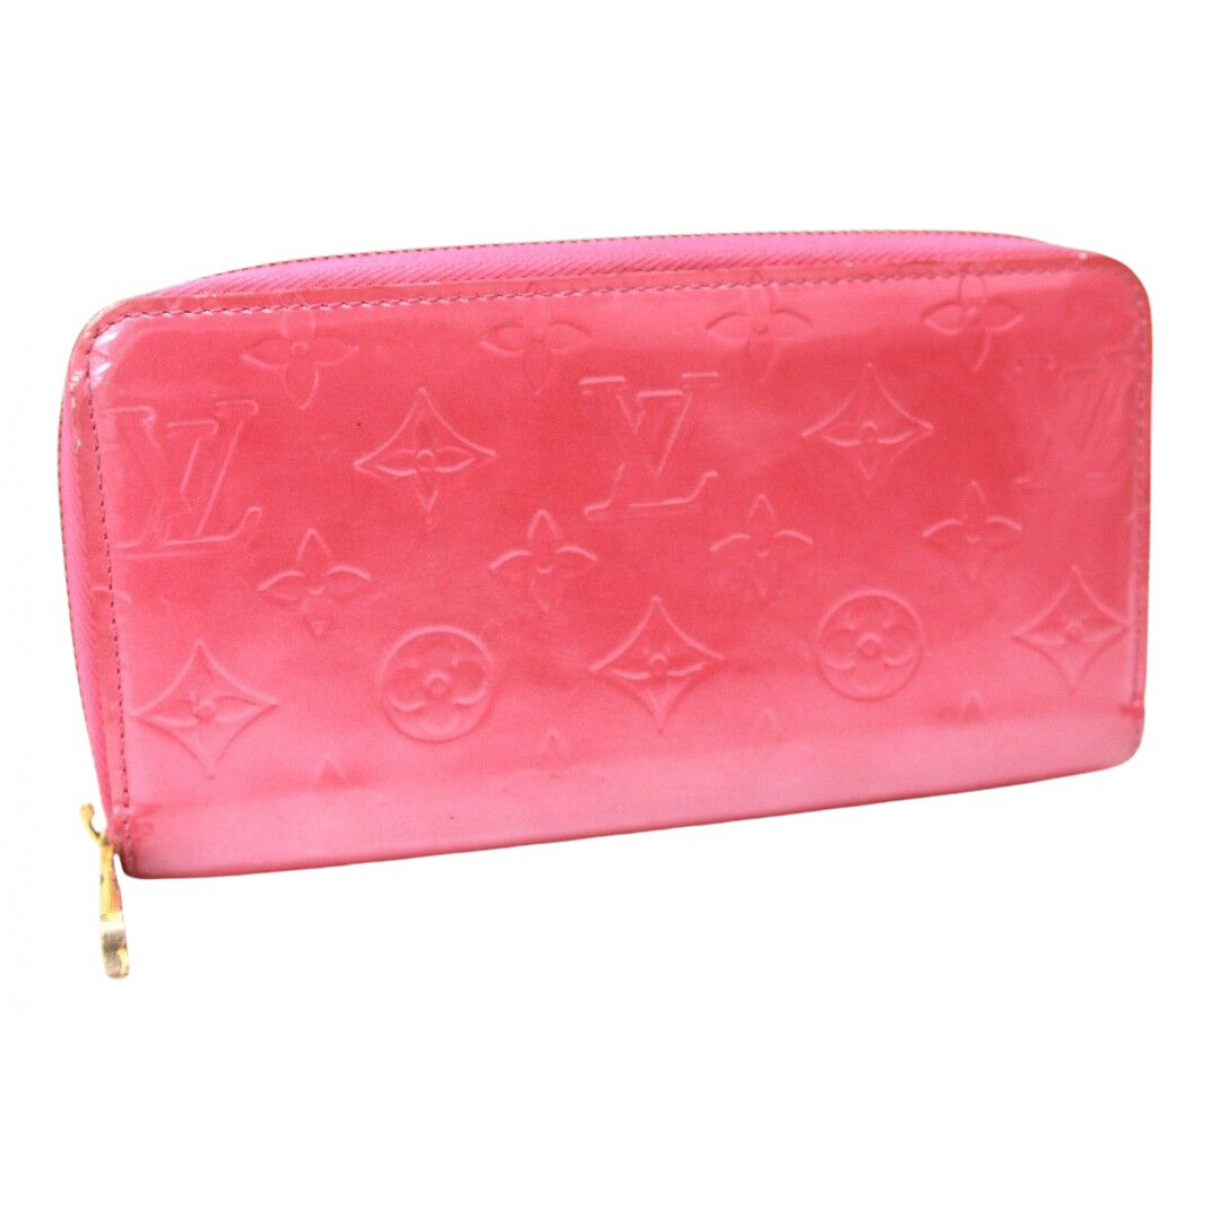 Louis Vuitton Zippy Pink Patent leather wallet for Women N